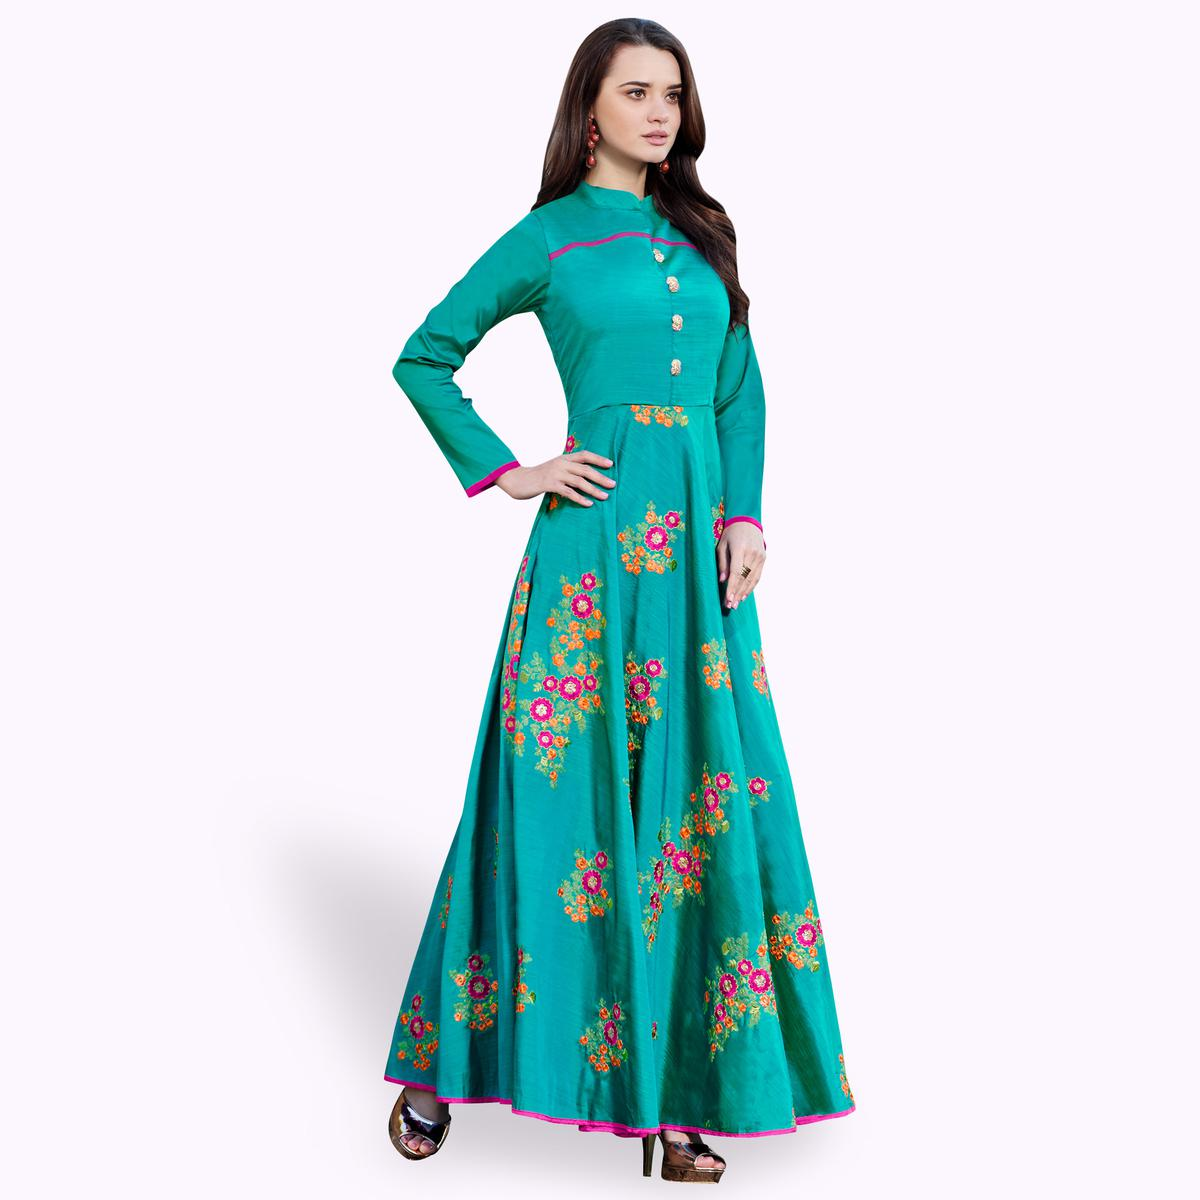 Eye-catching Rama Green Colored Party Wear Embroidered Raw Silk Gown